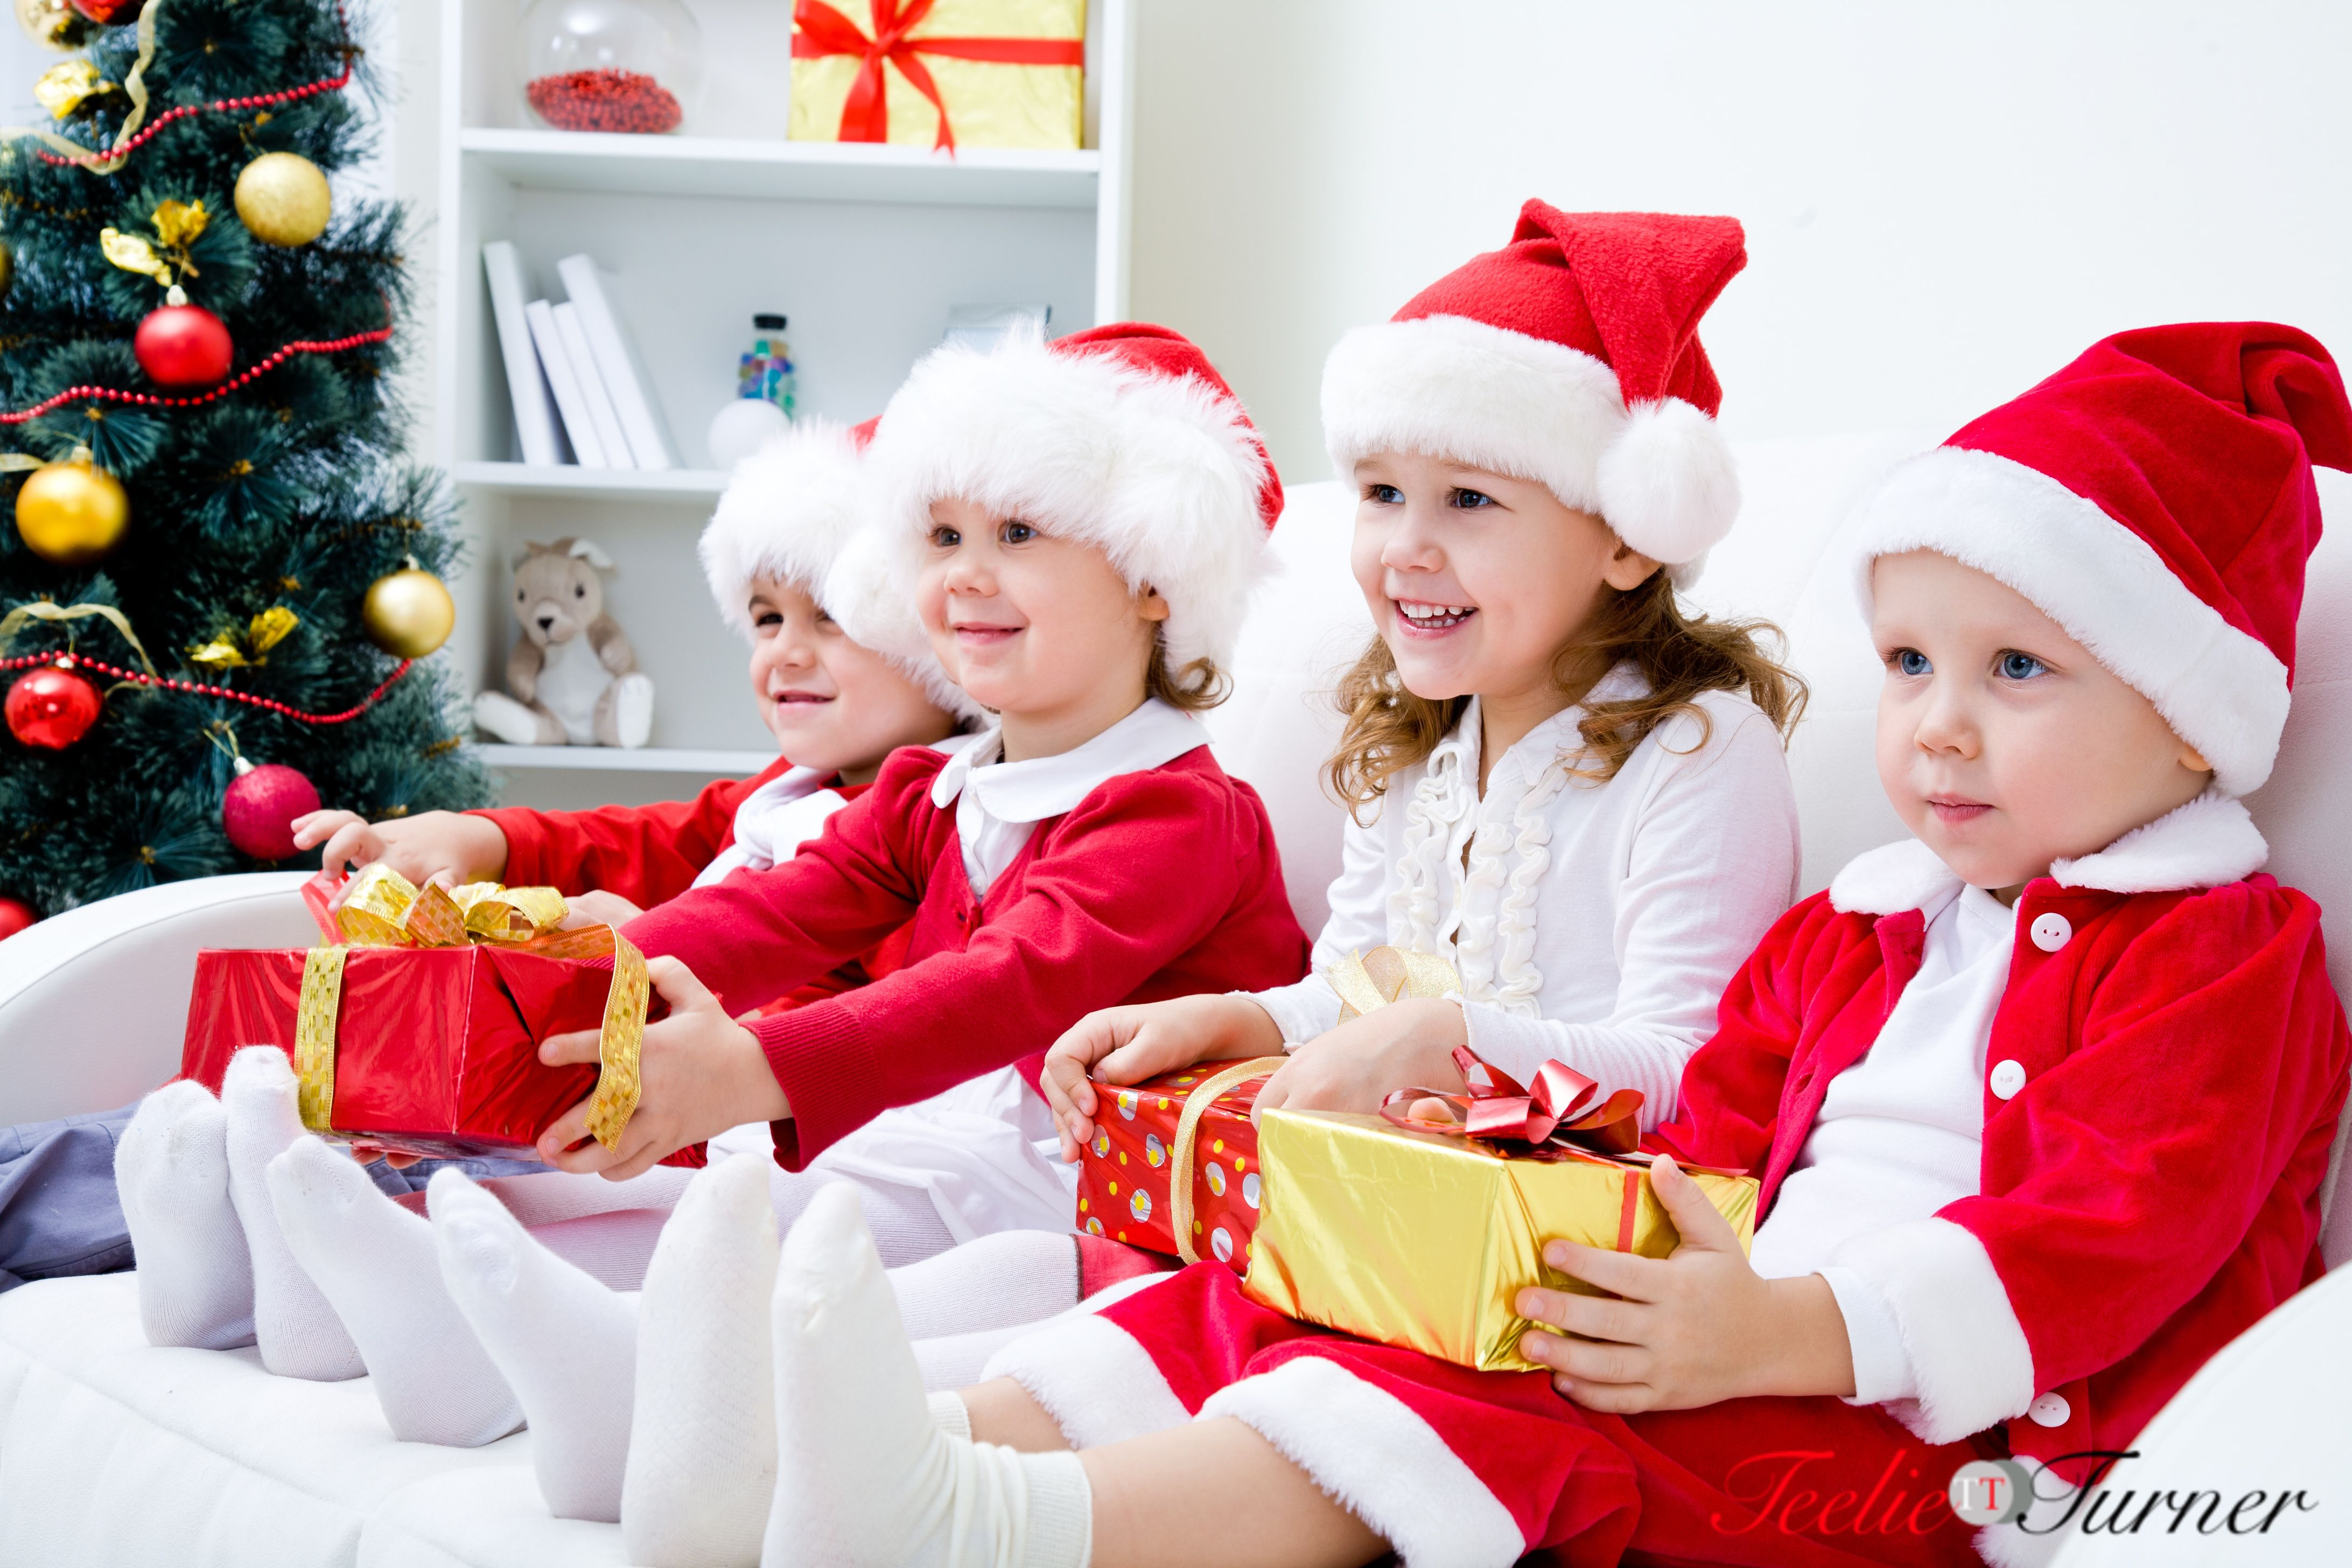 Happy little children preparing for Christmas wearing Santa costume. www.teelieturner.com #Christmas